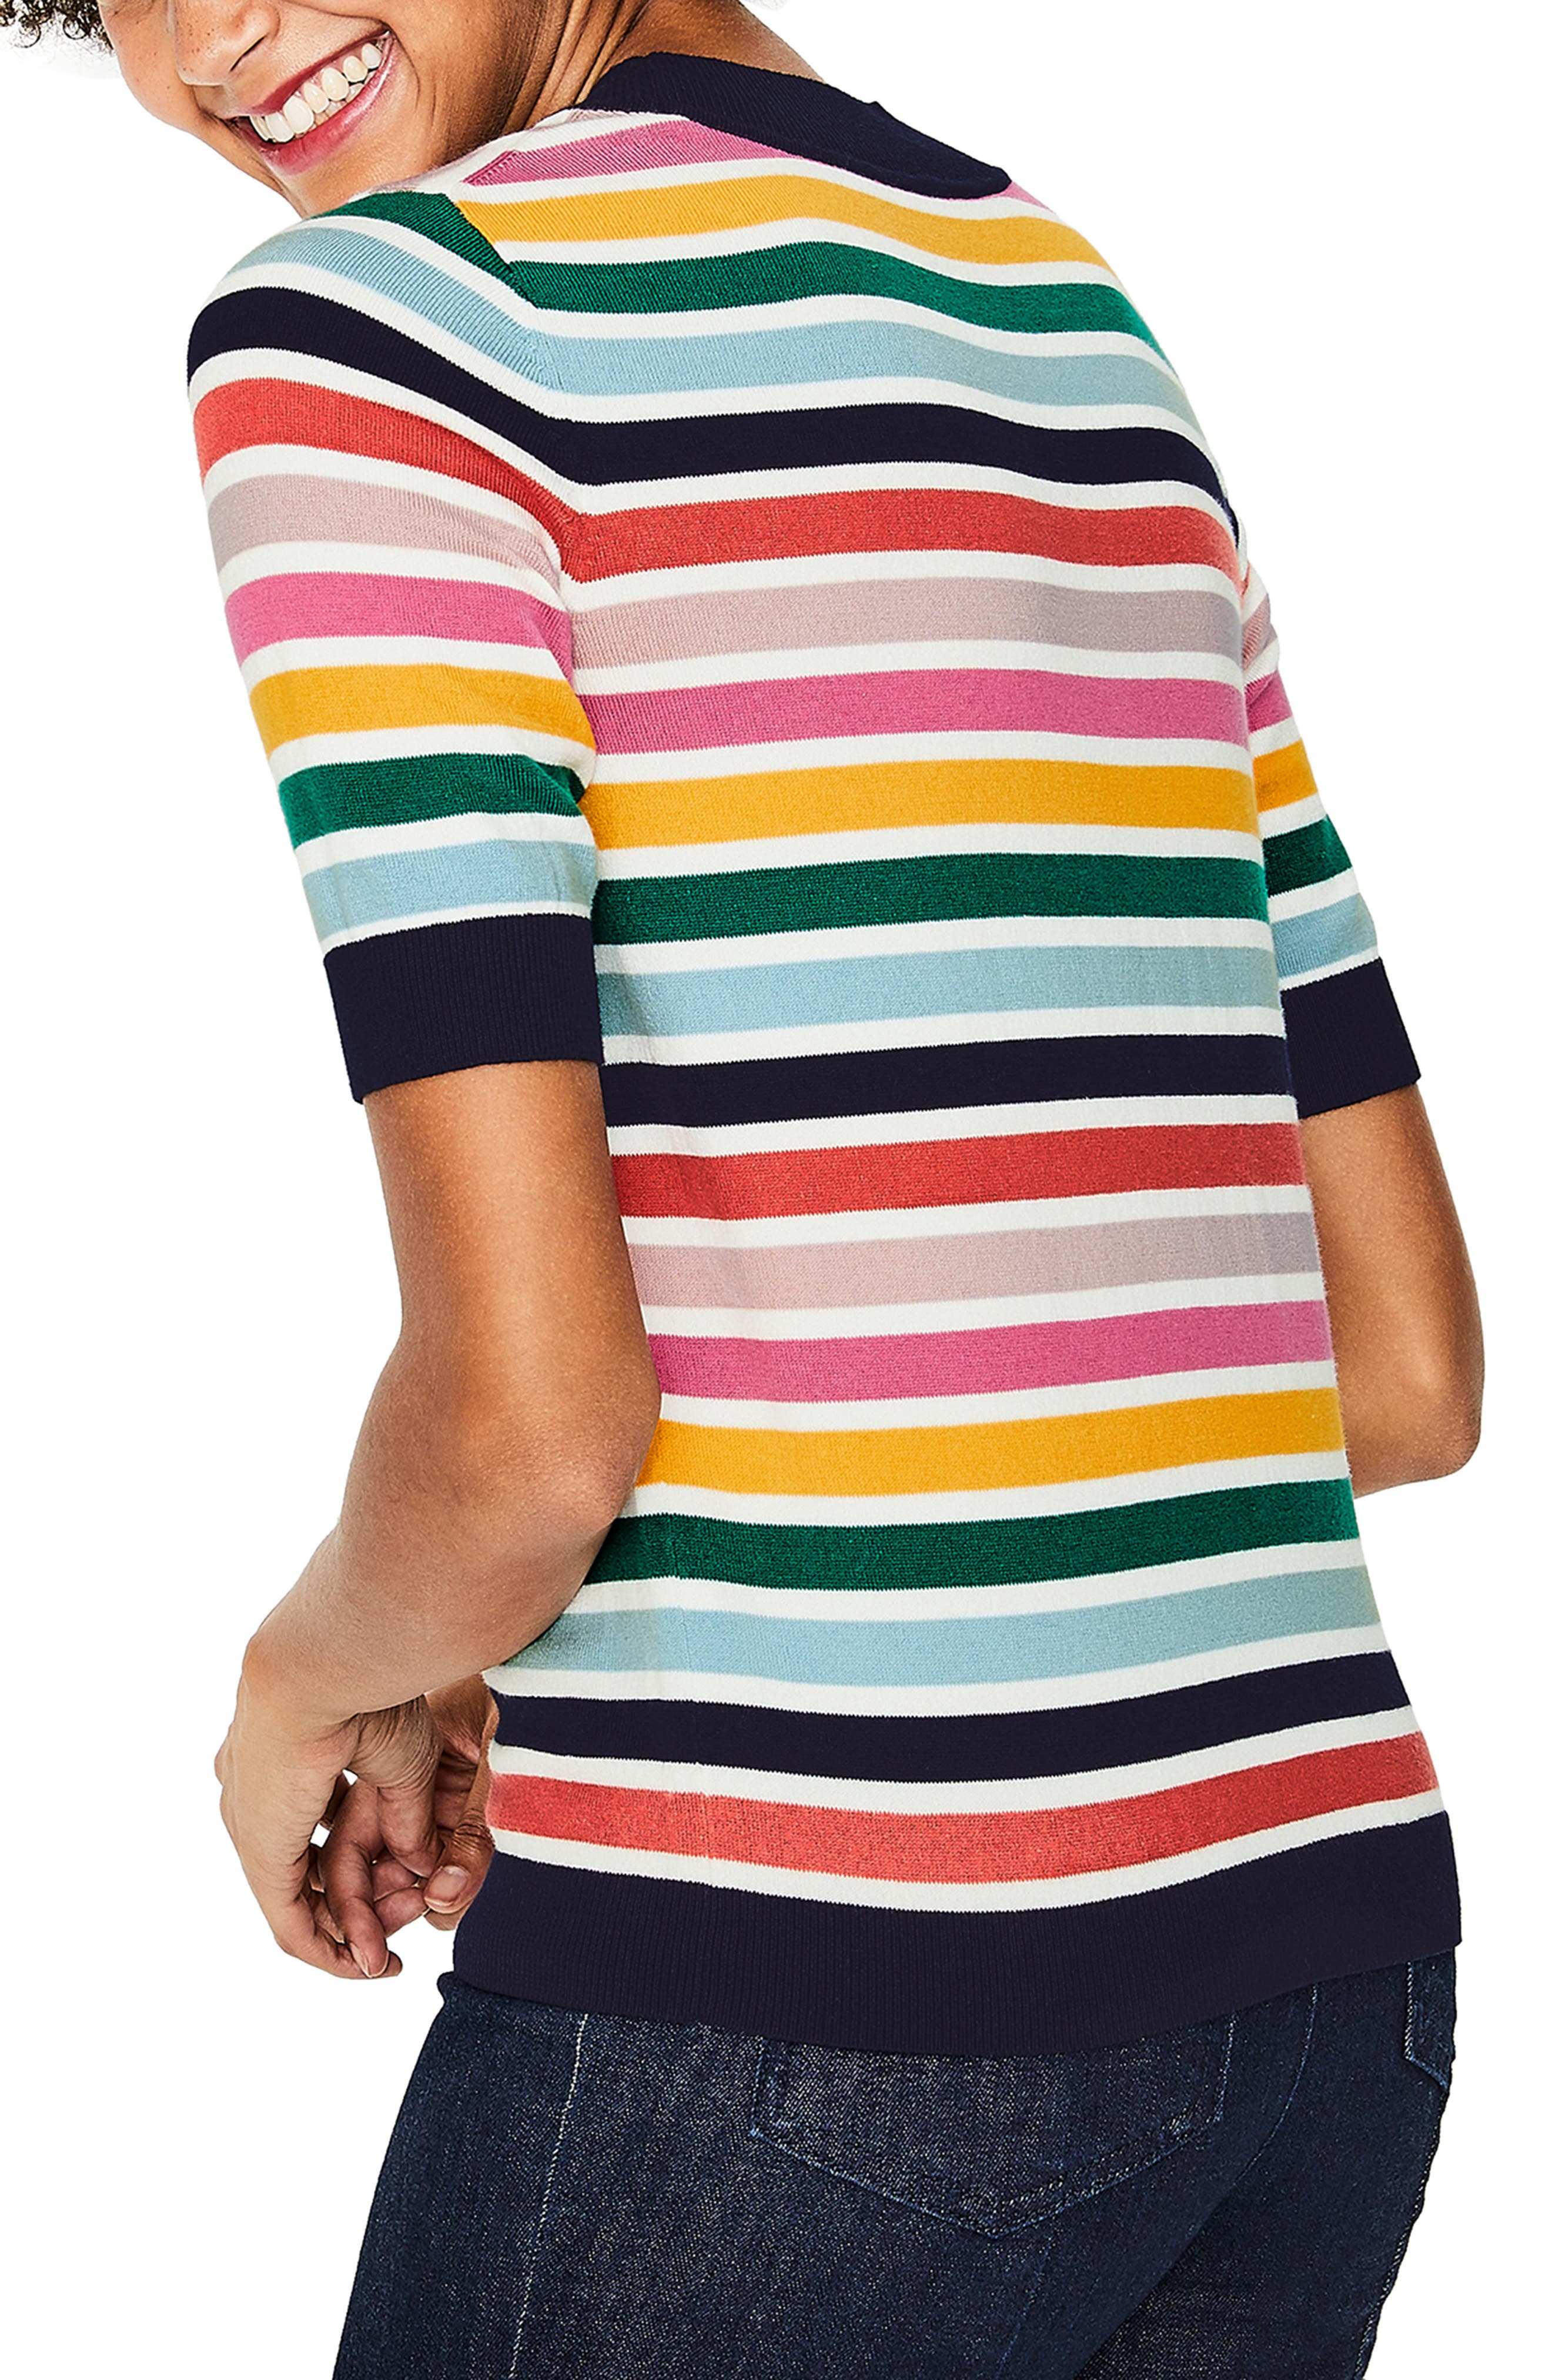 BODEN, Multicolor Knit Tee, Alternate thumbnail 2, color, MULTI STRIPE